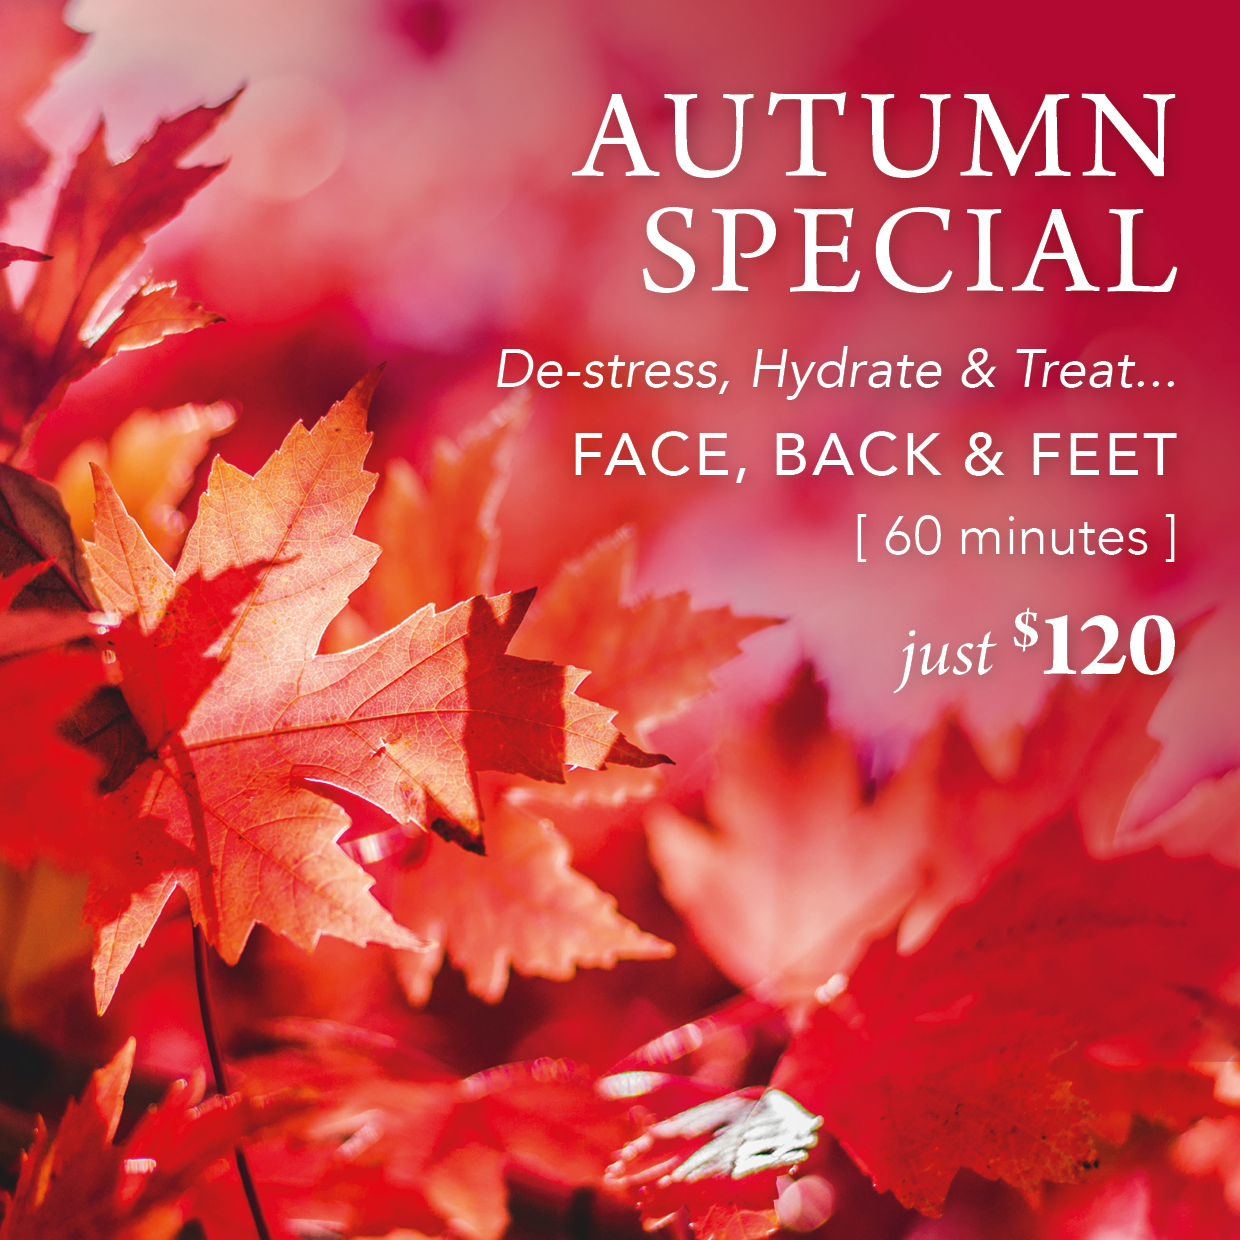 Autumn Special at Rouge Beauty Therapy